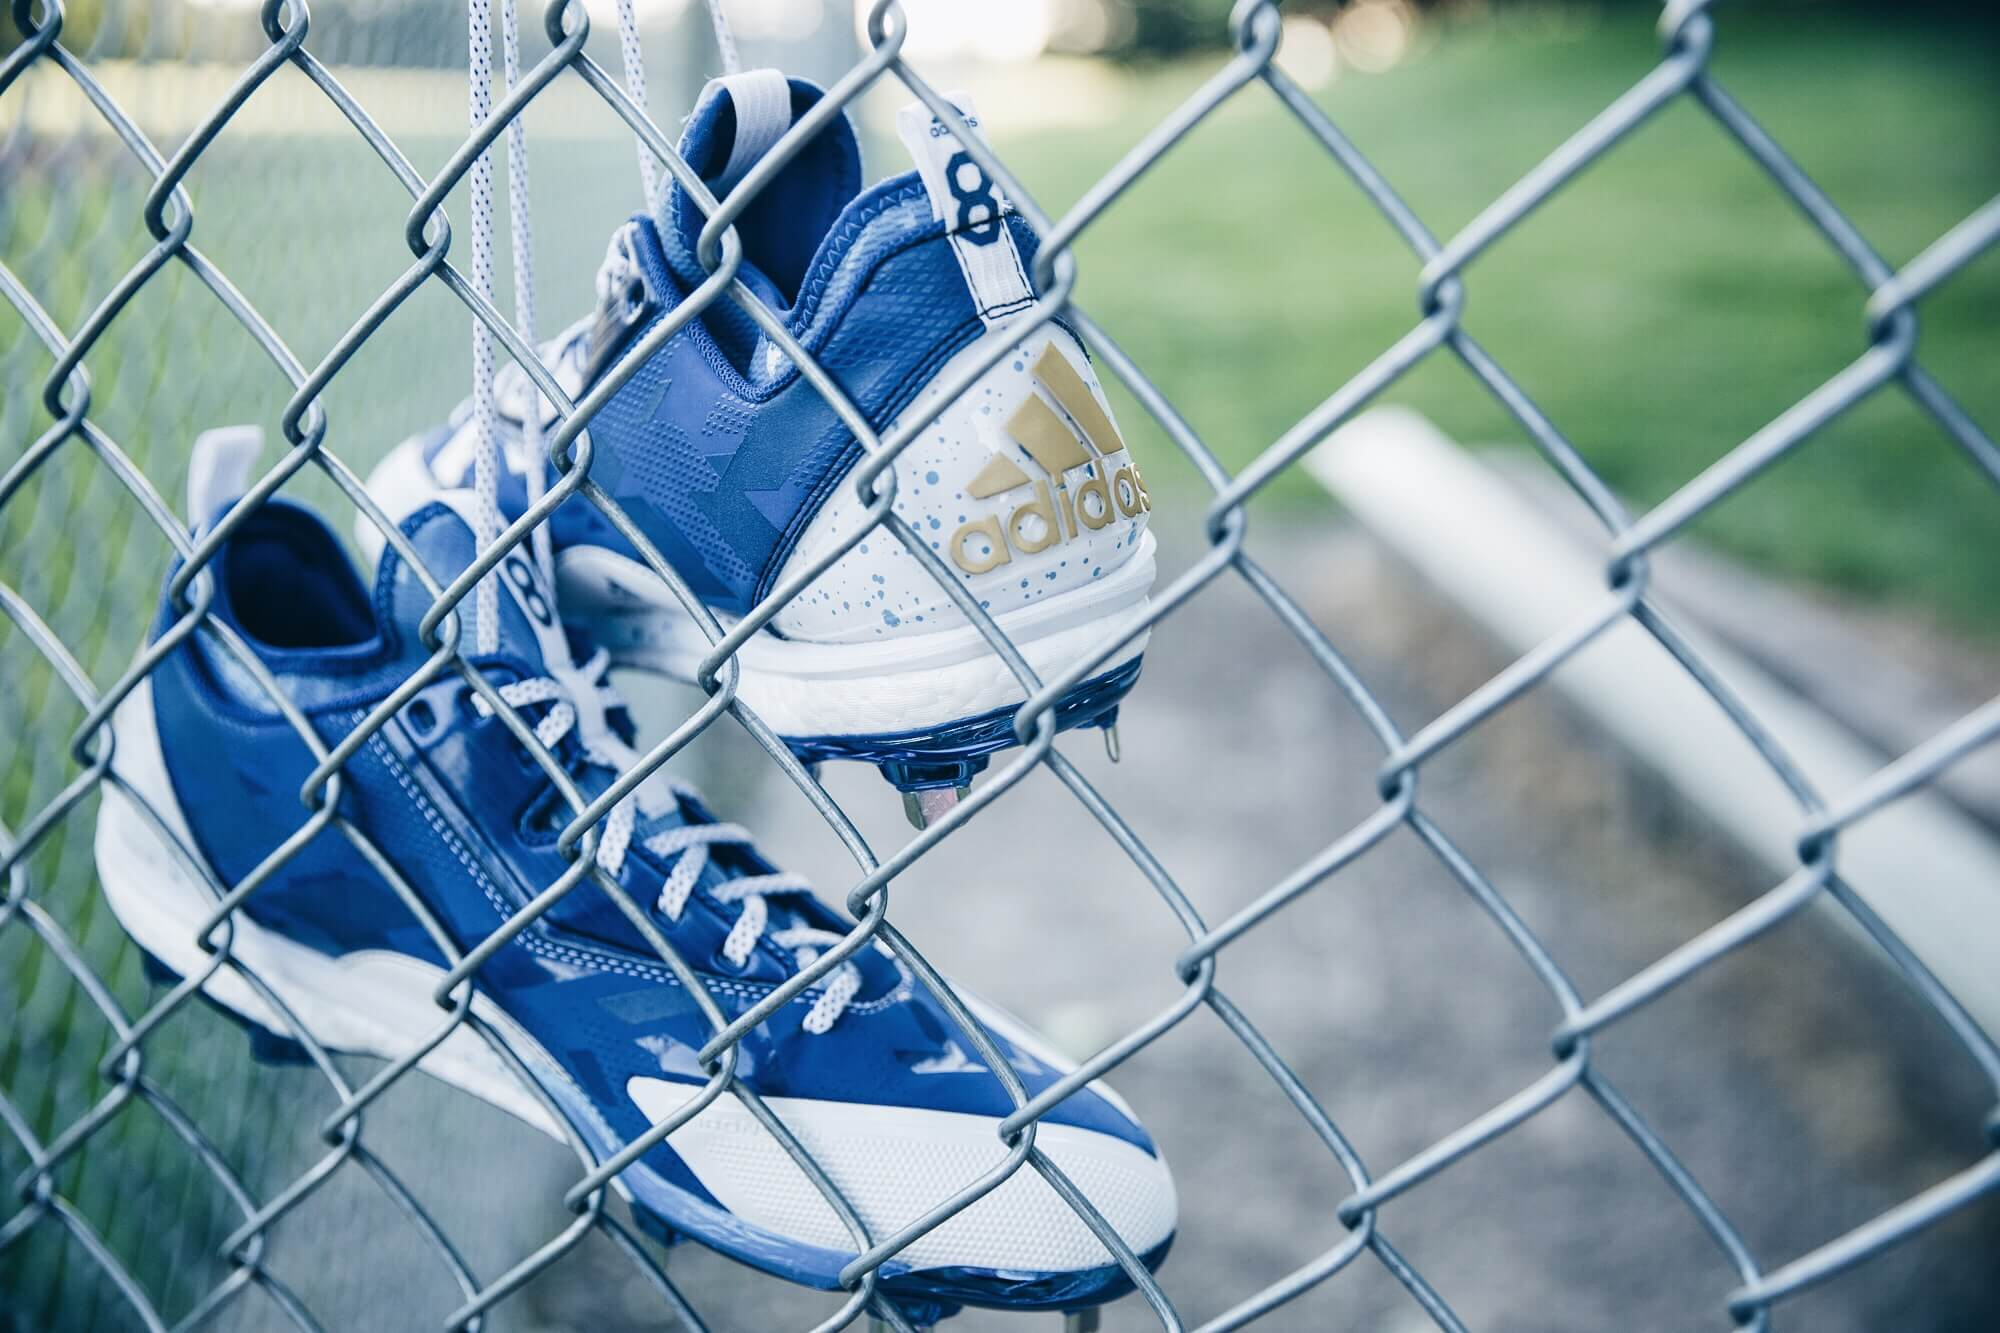 Mike Moustakas adidas Cleats 3